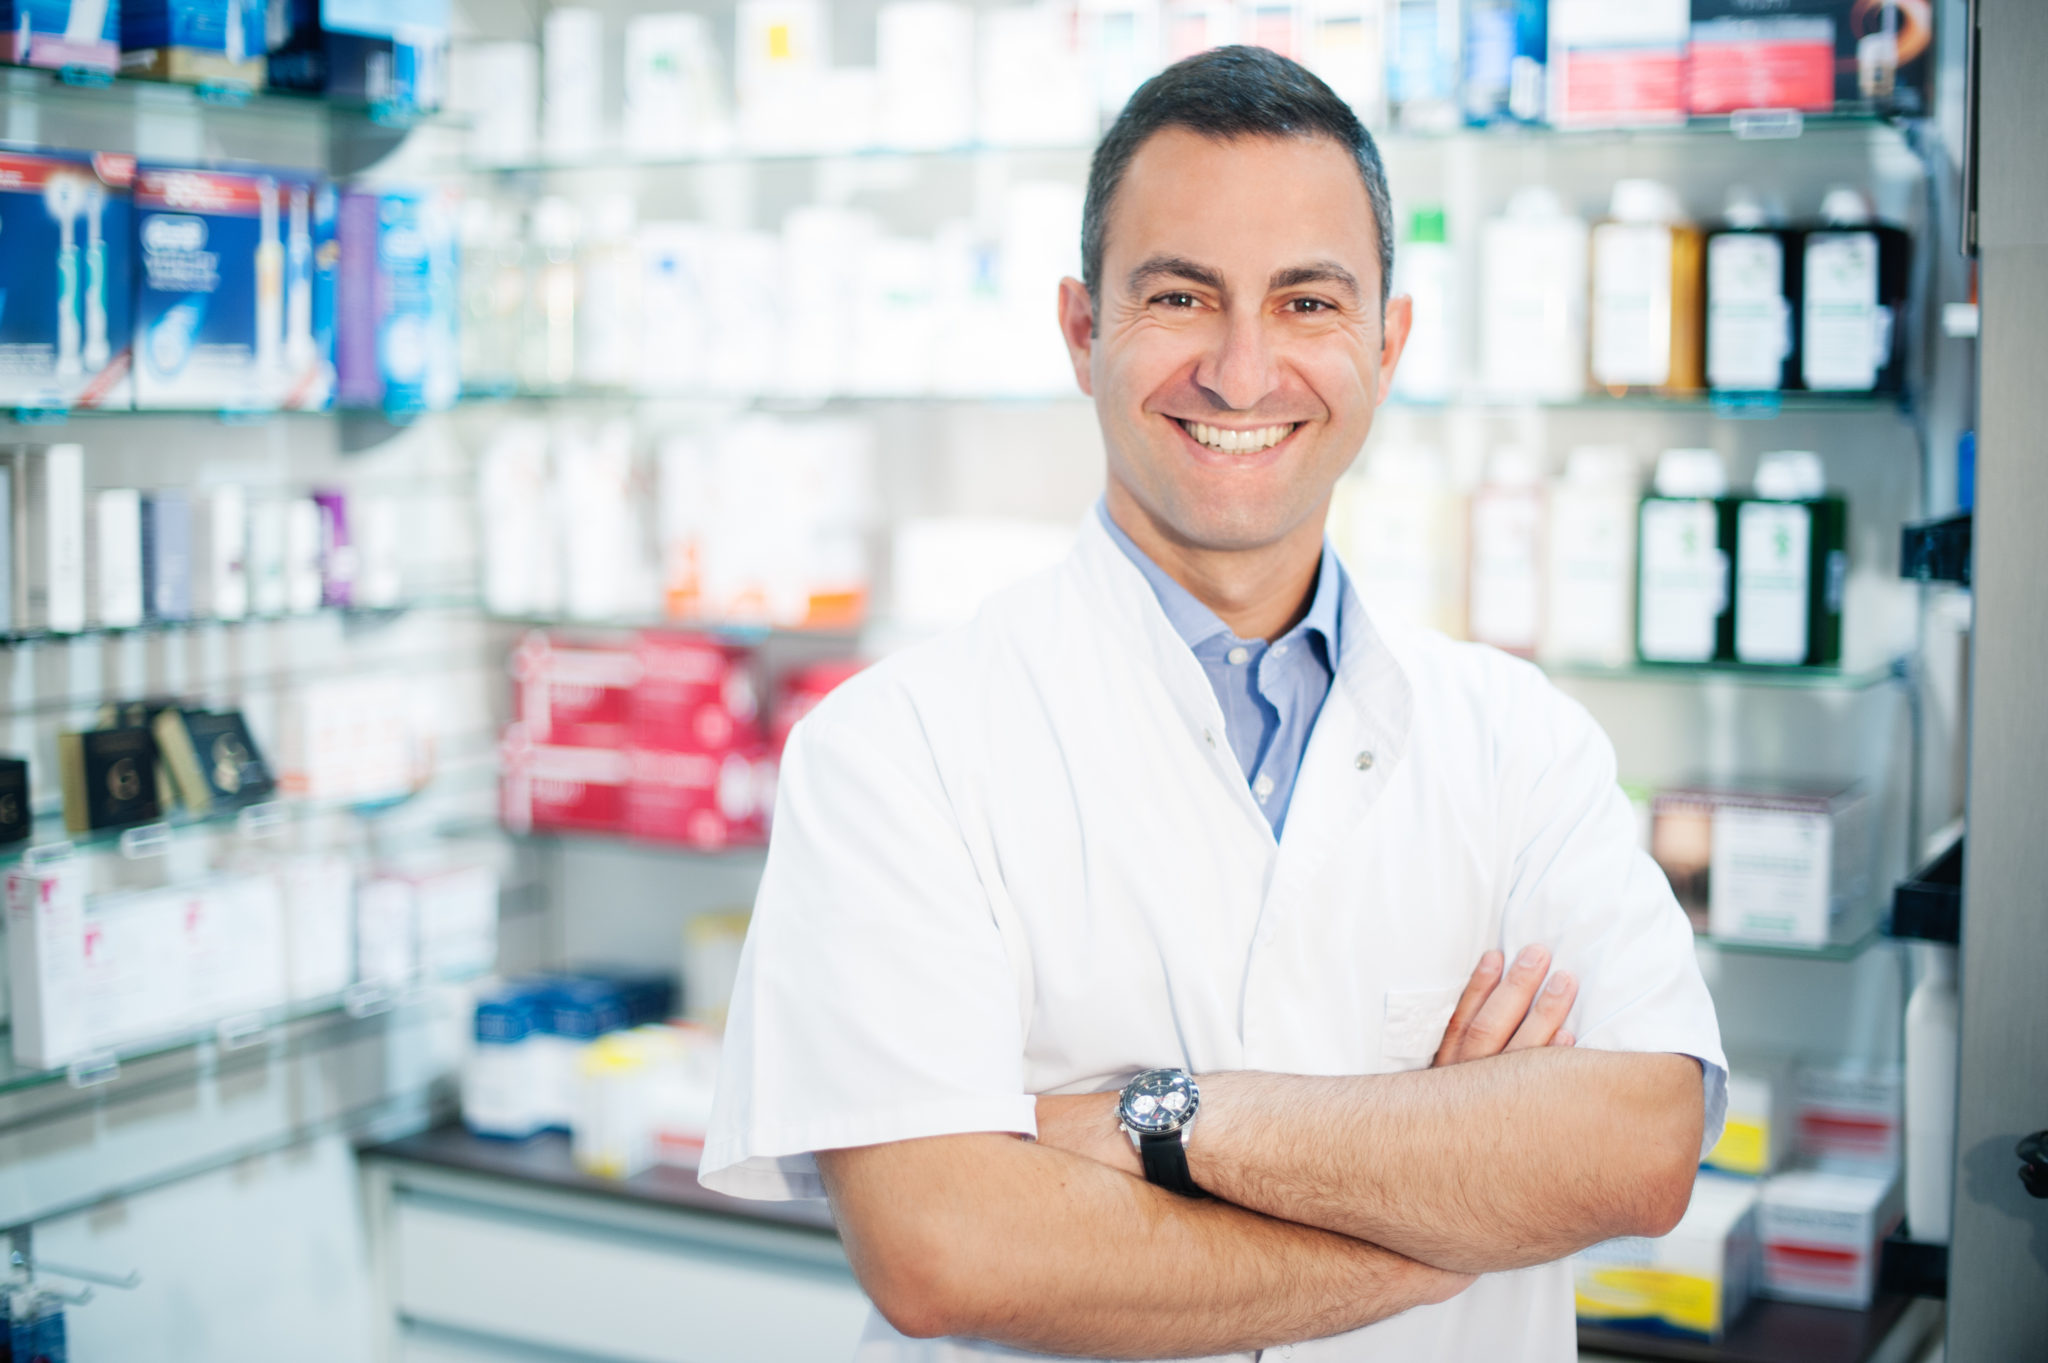 cheerful smiling pharmacist chemist man standing in pharmacy Guardian Healthcare Main Office Located in Brockway, PA Pennsylvania